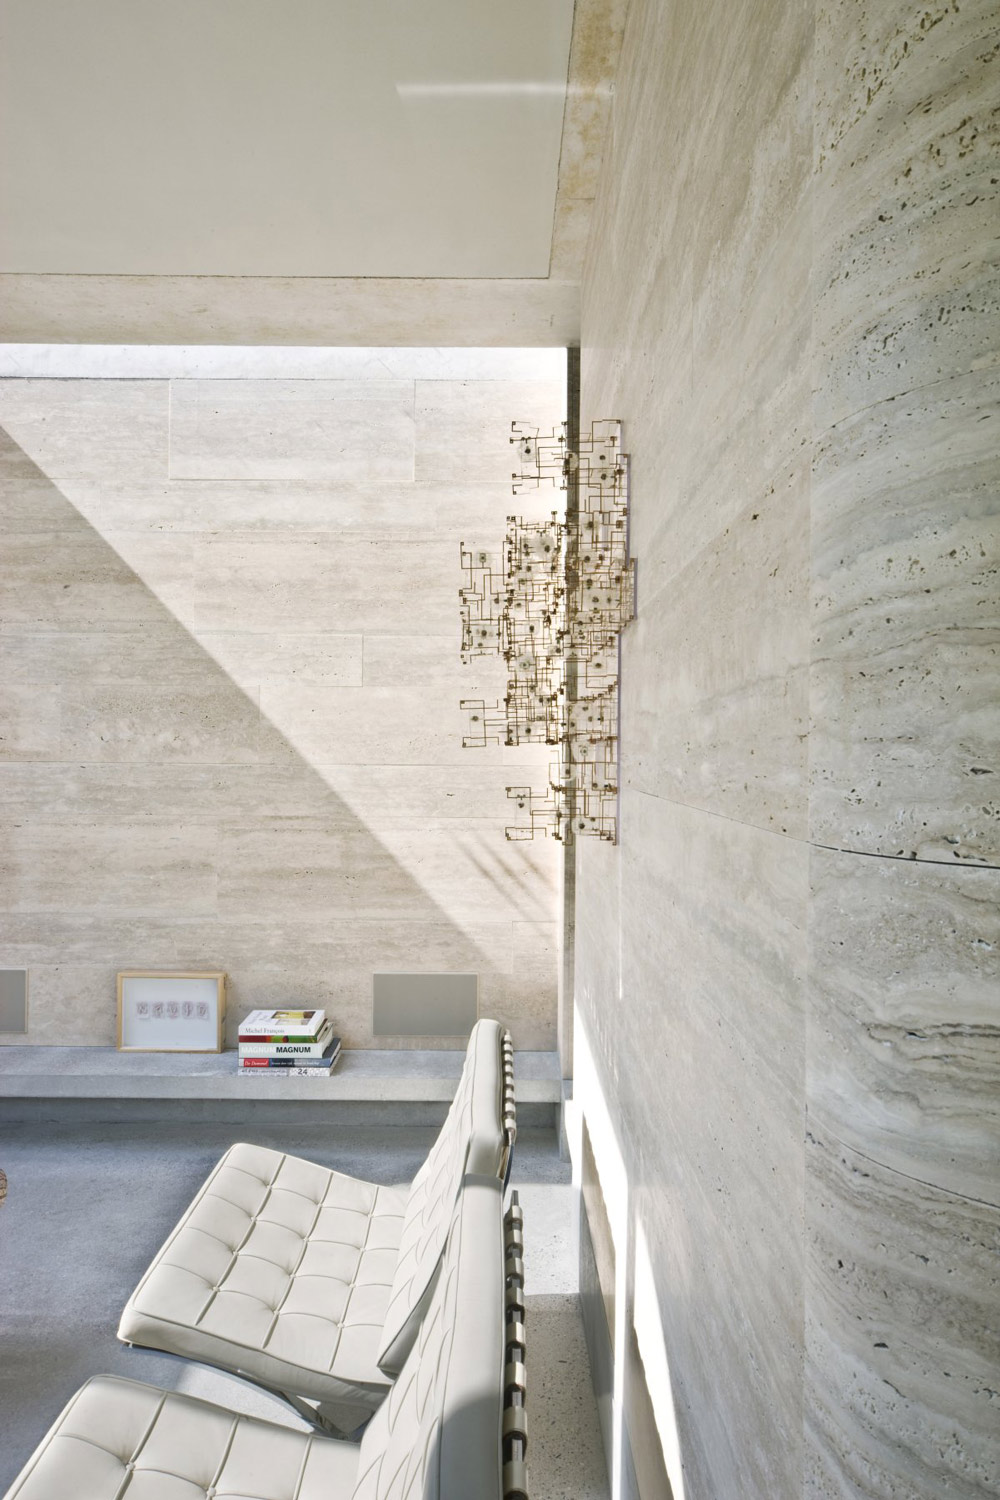 Wall Light, Extension and Renovation in Eindhoven, The Netherlands